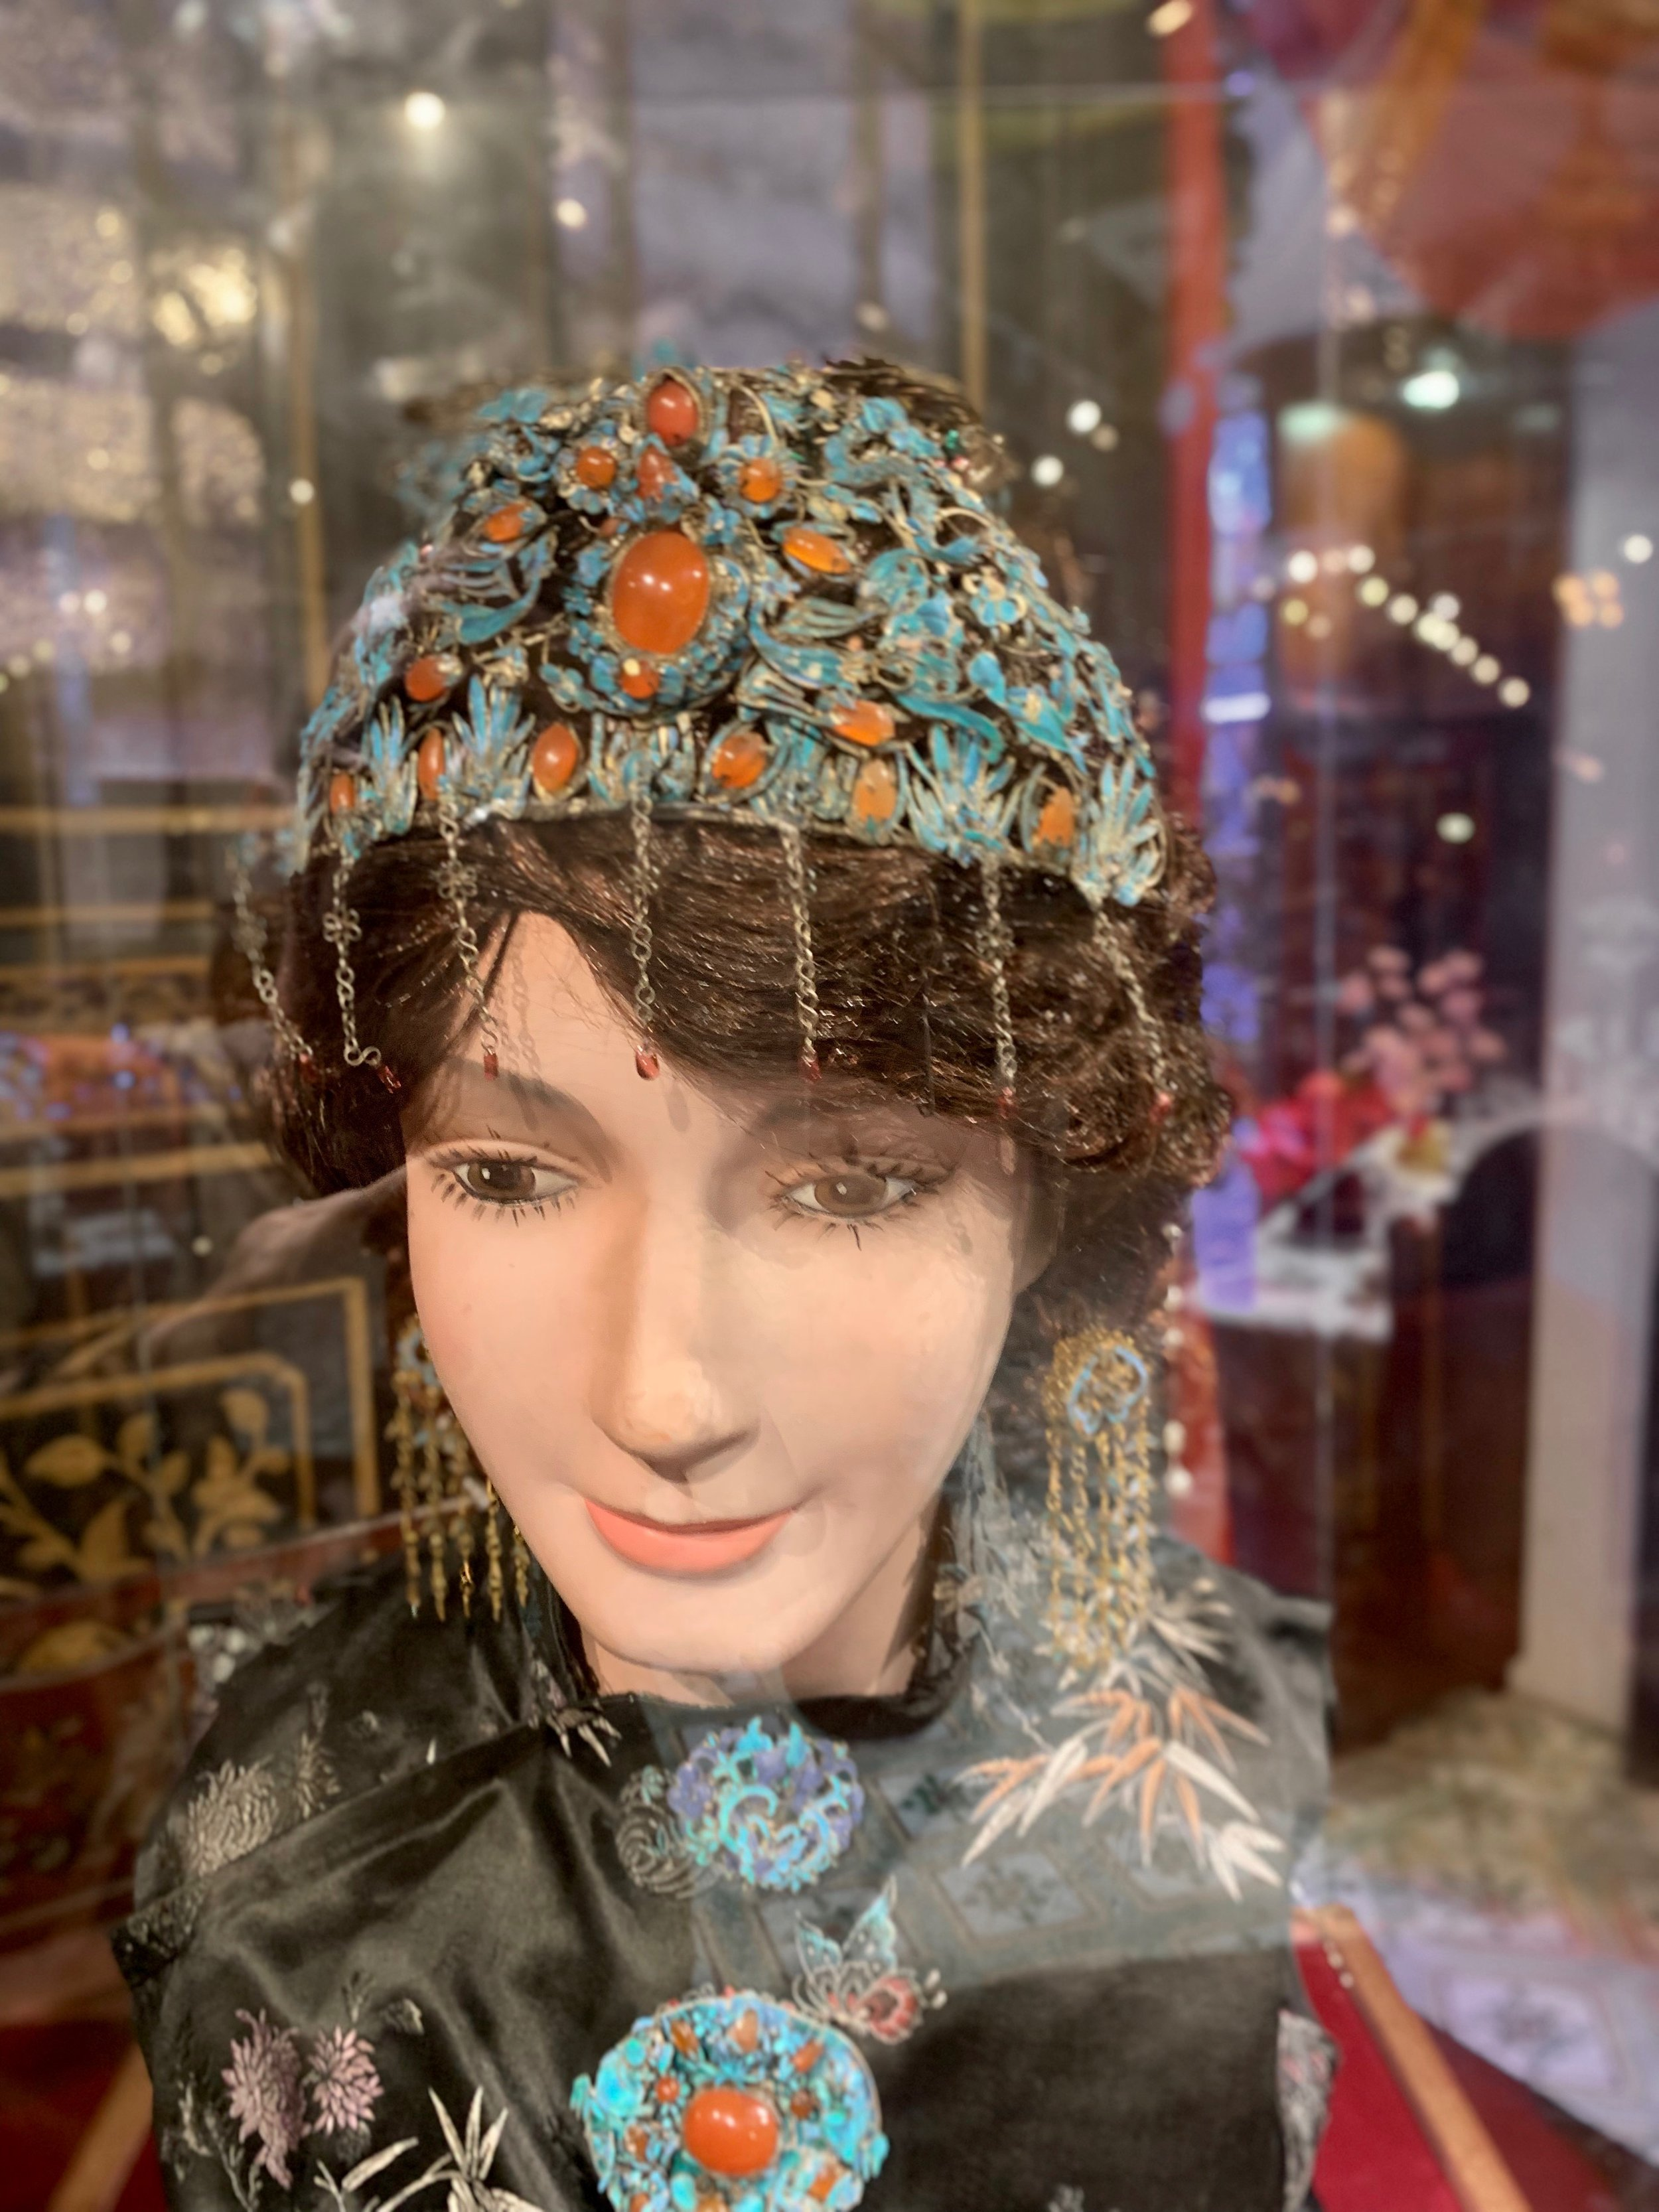 This beautiful headpiece is not what it seems. The unique blue color does not come from a mineral. Take a closer look in the next photo.